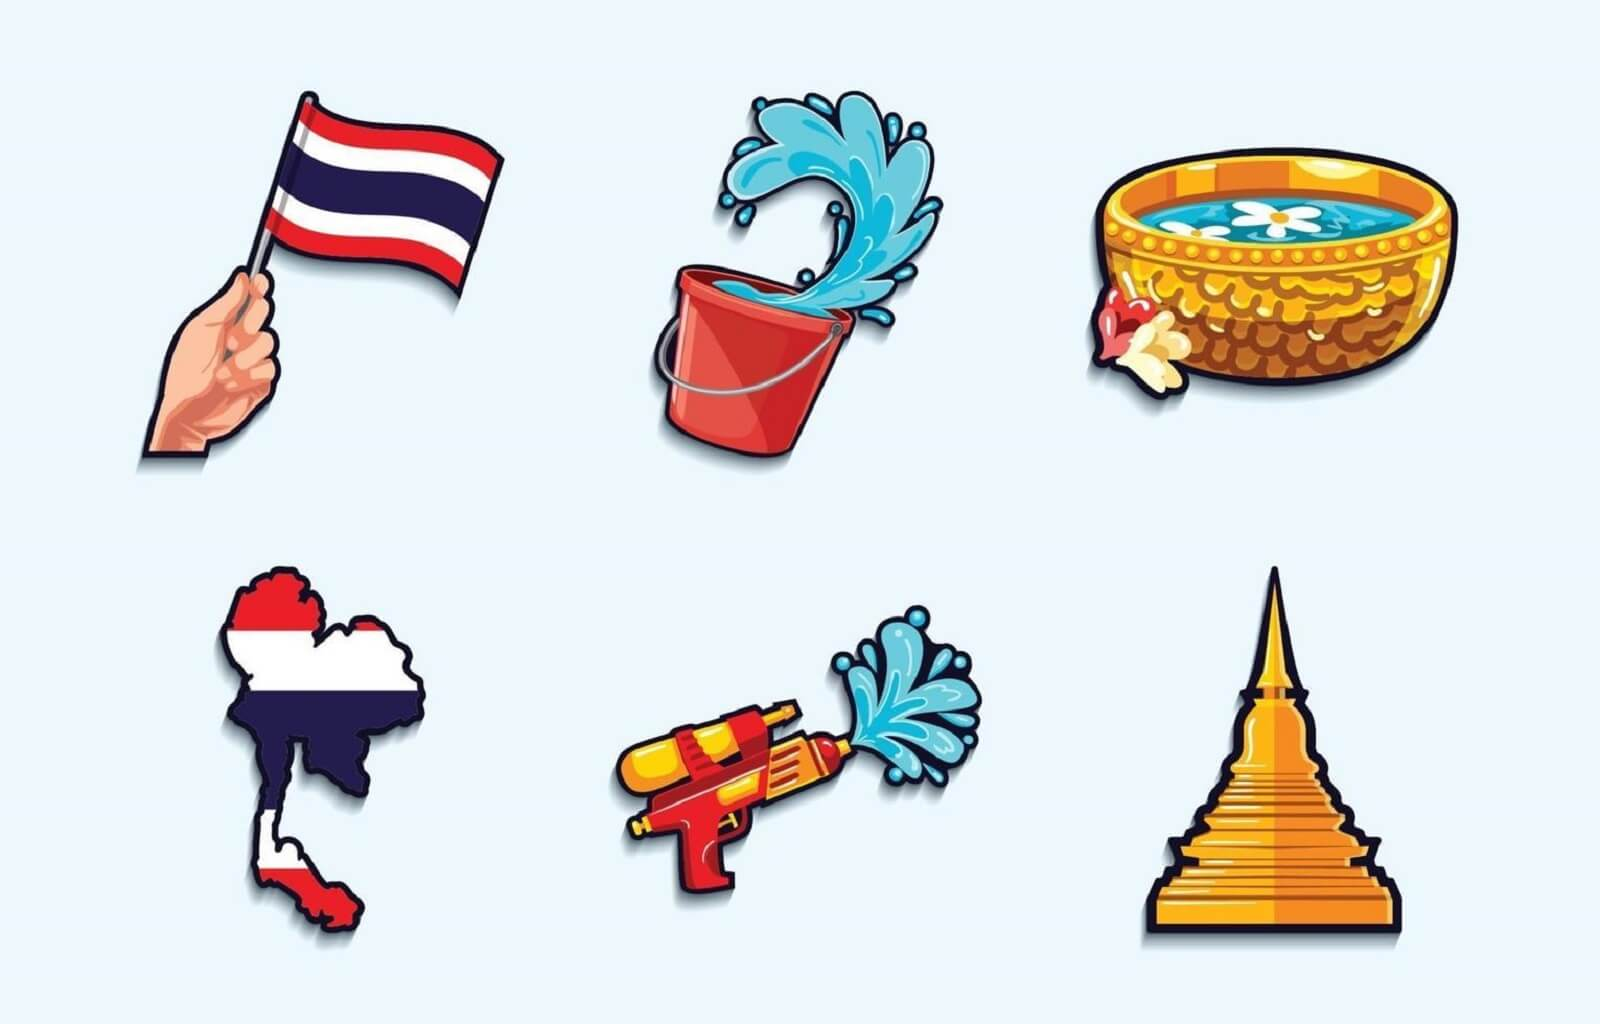 Songkran festival activities icons collection image